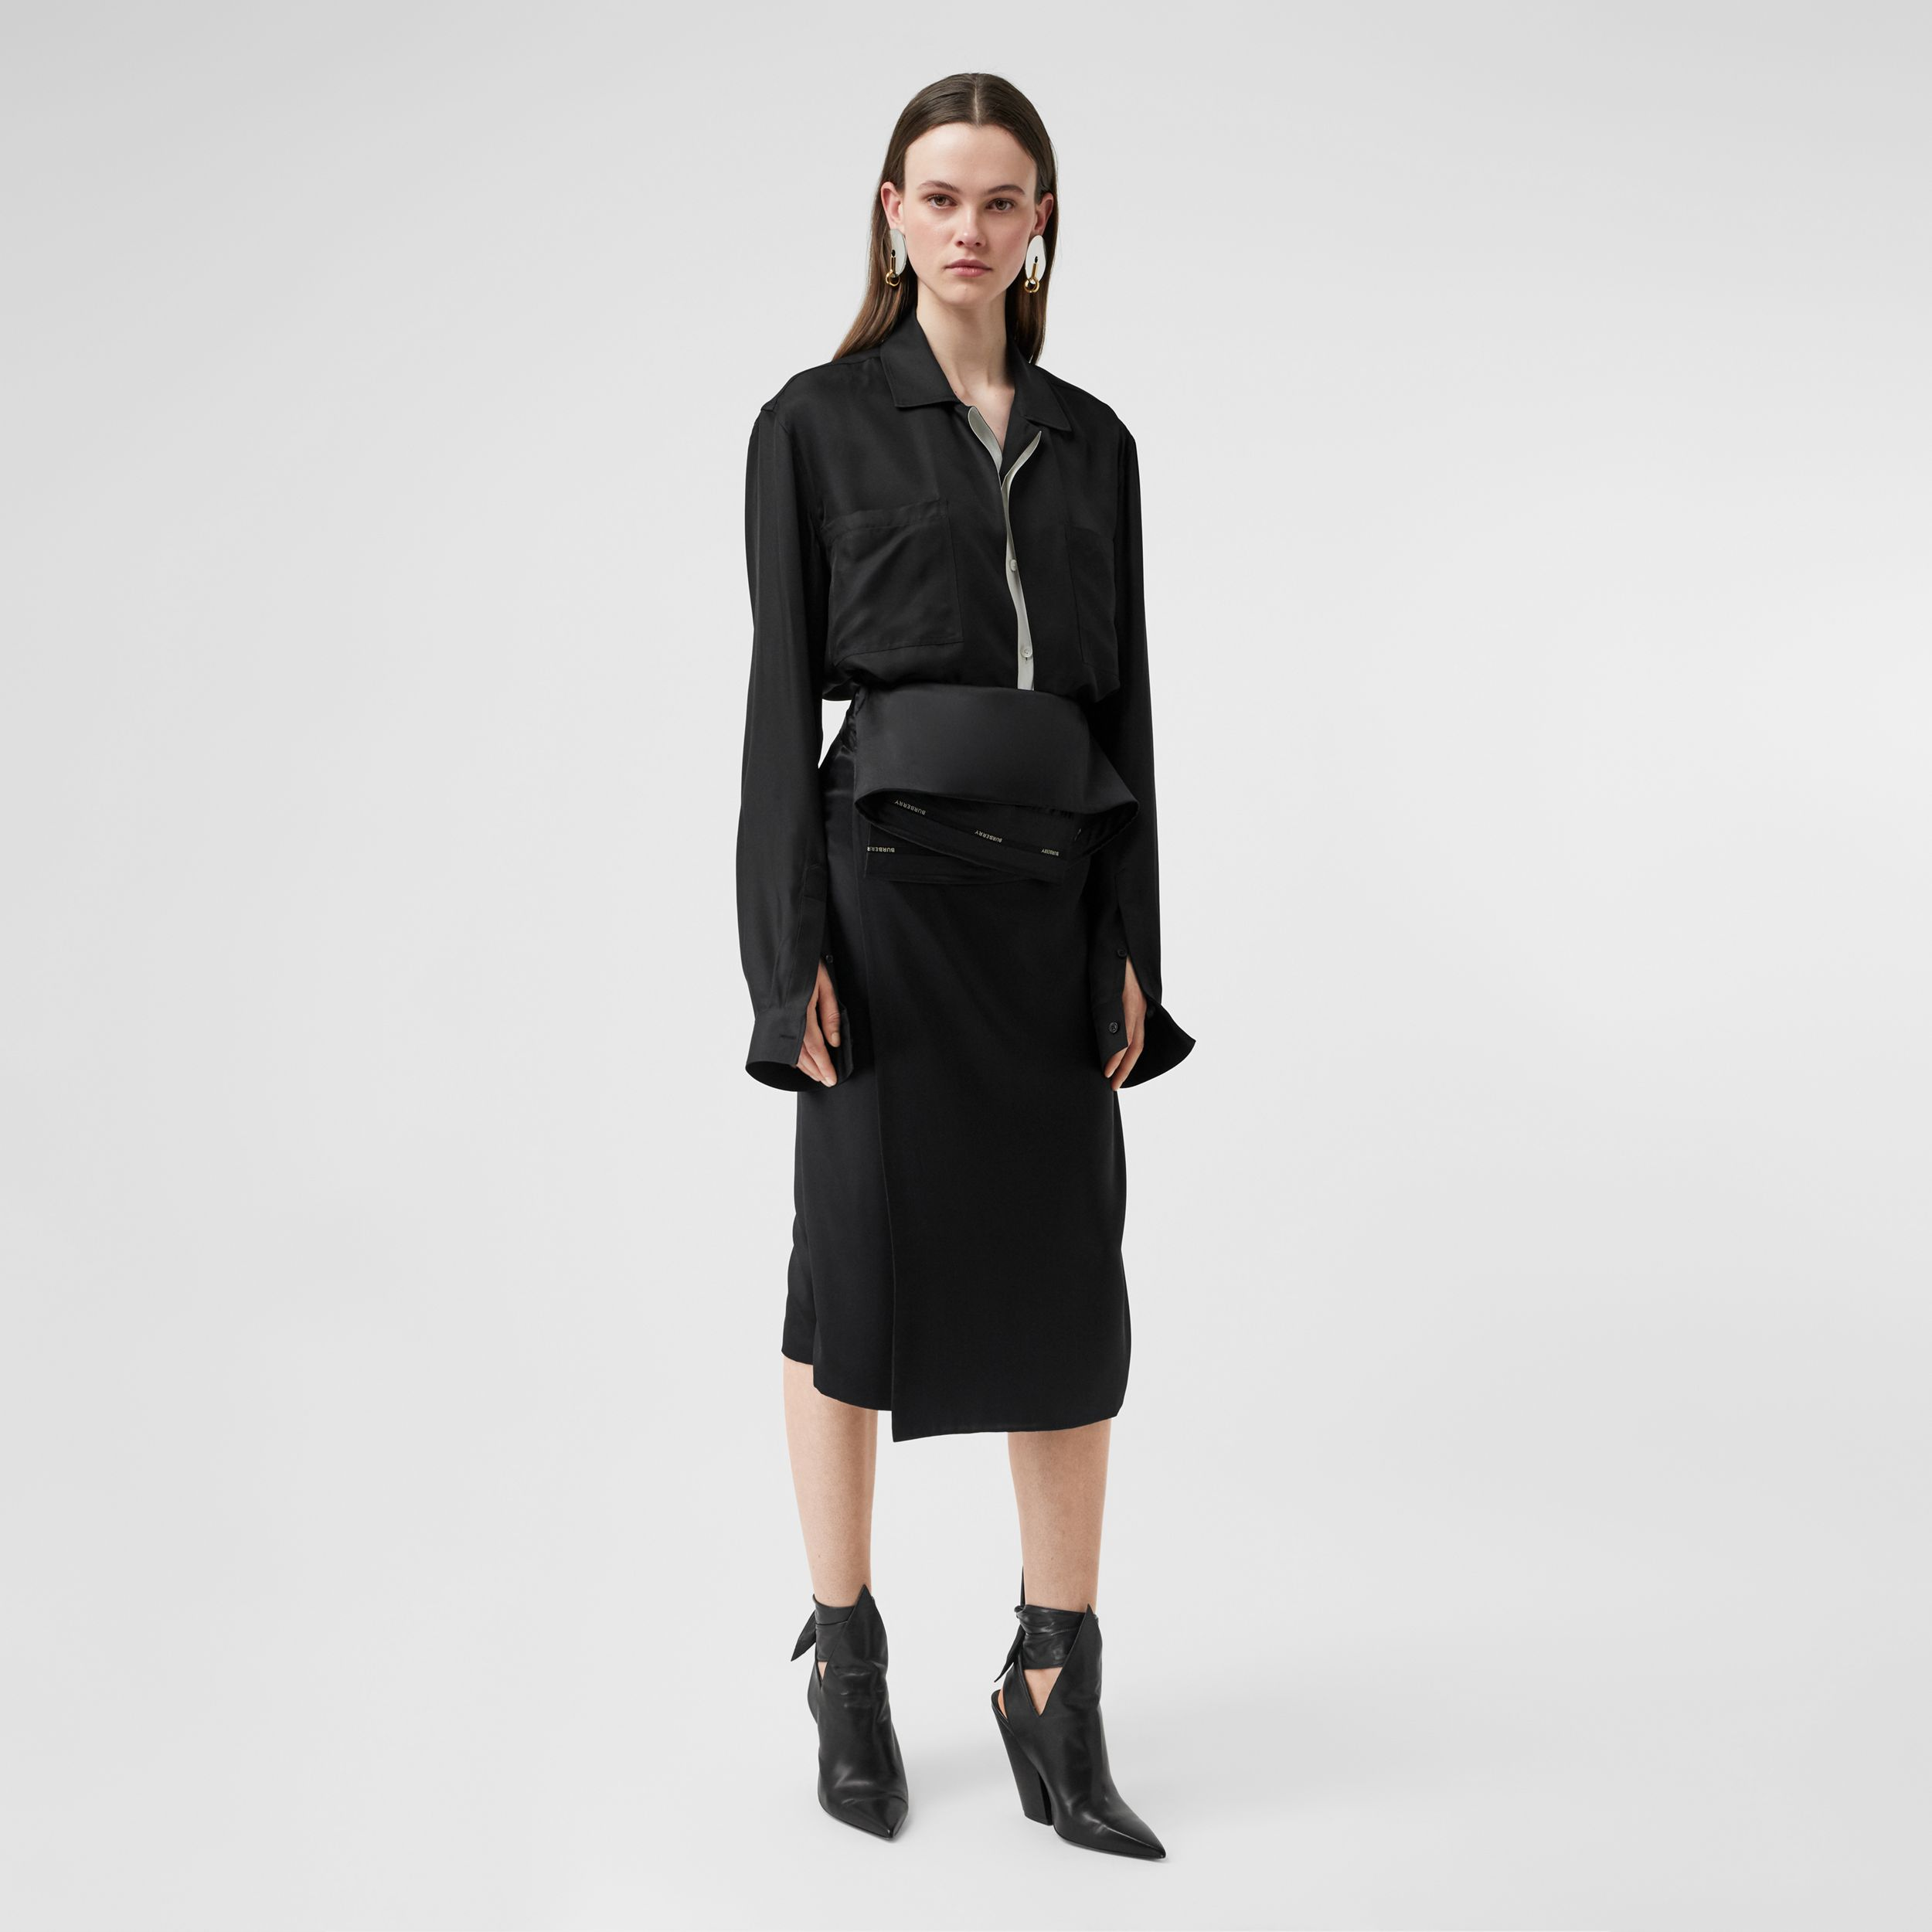 Silk Satin Foldover Skirt in Black - Women | Burberry Hong Kong S.A.R. - 1